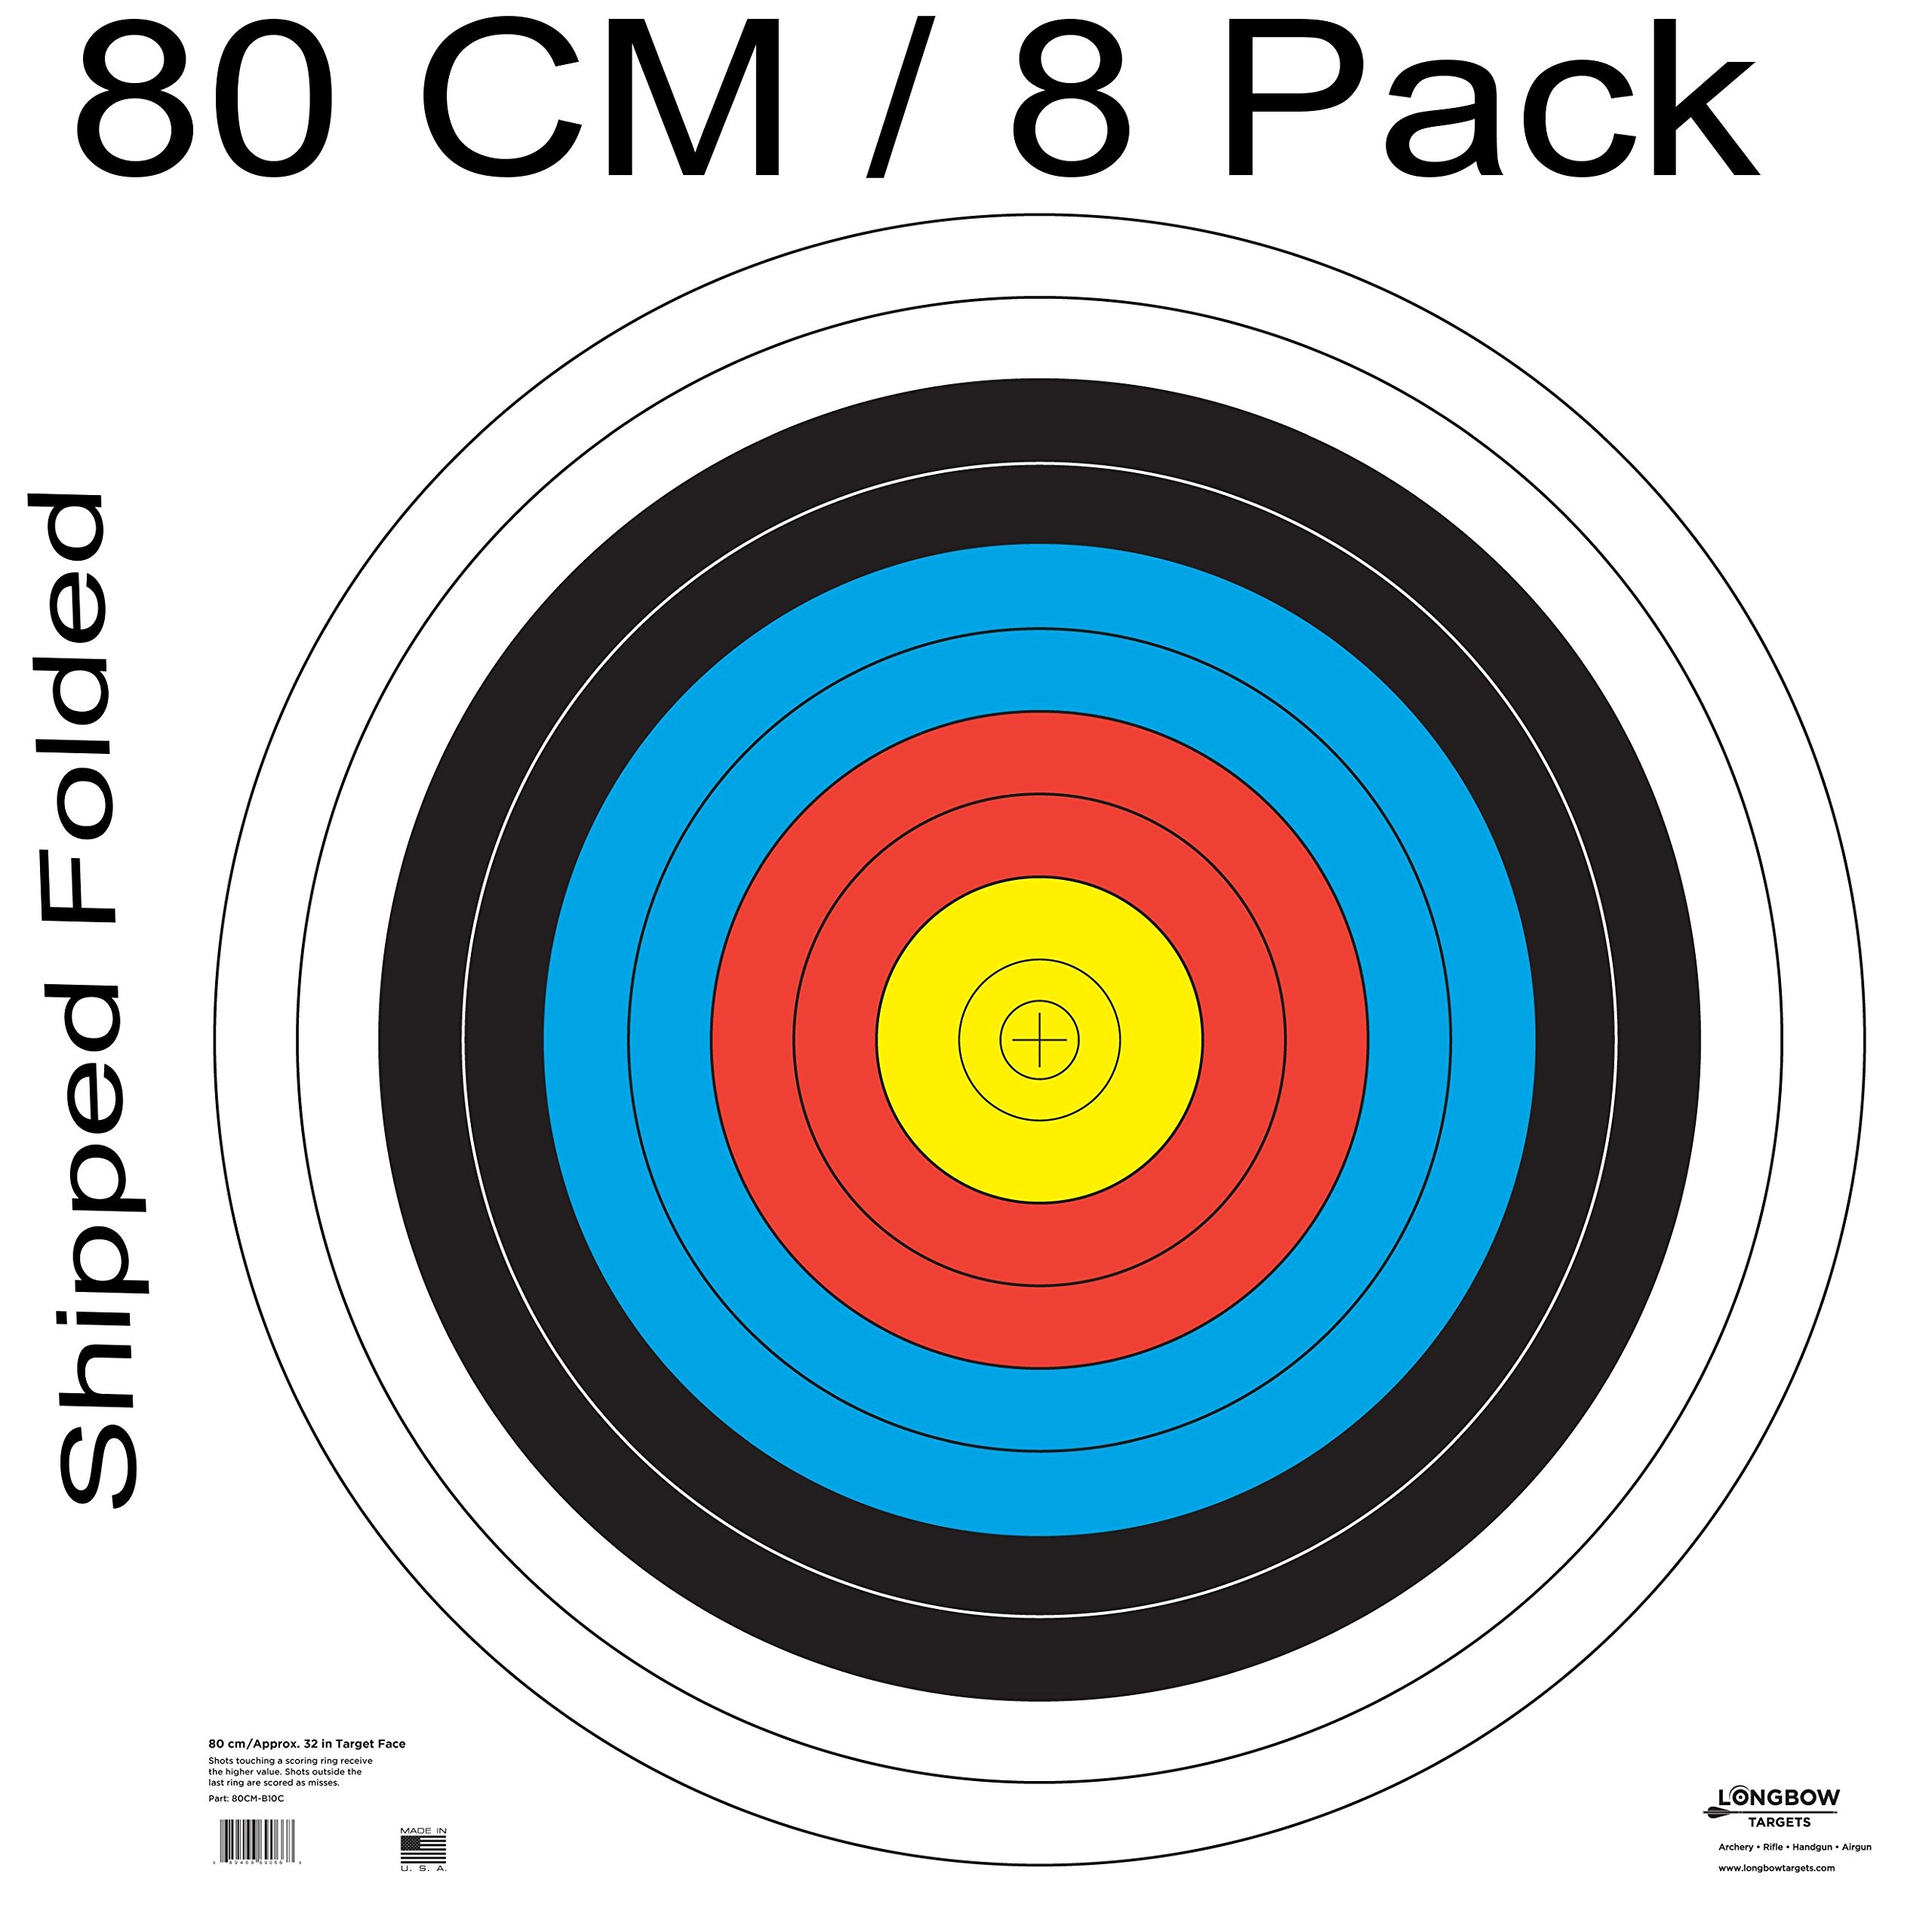 Archery 40cm & 80cm Targets by Longbow (8 Pack (80cm) Folded, 80cm Archery Paper) by Longbow Targets